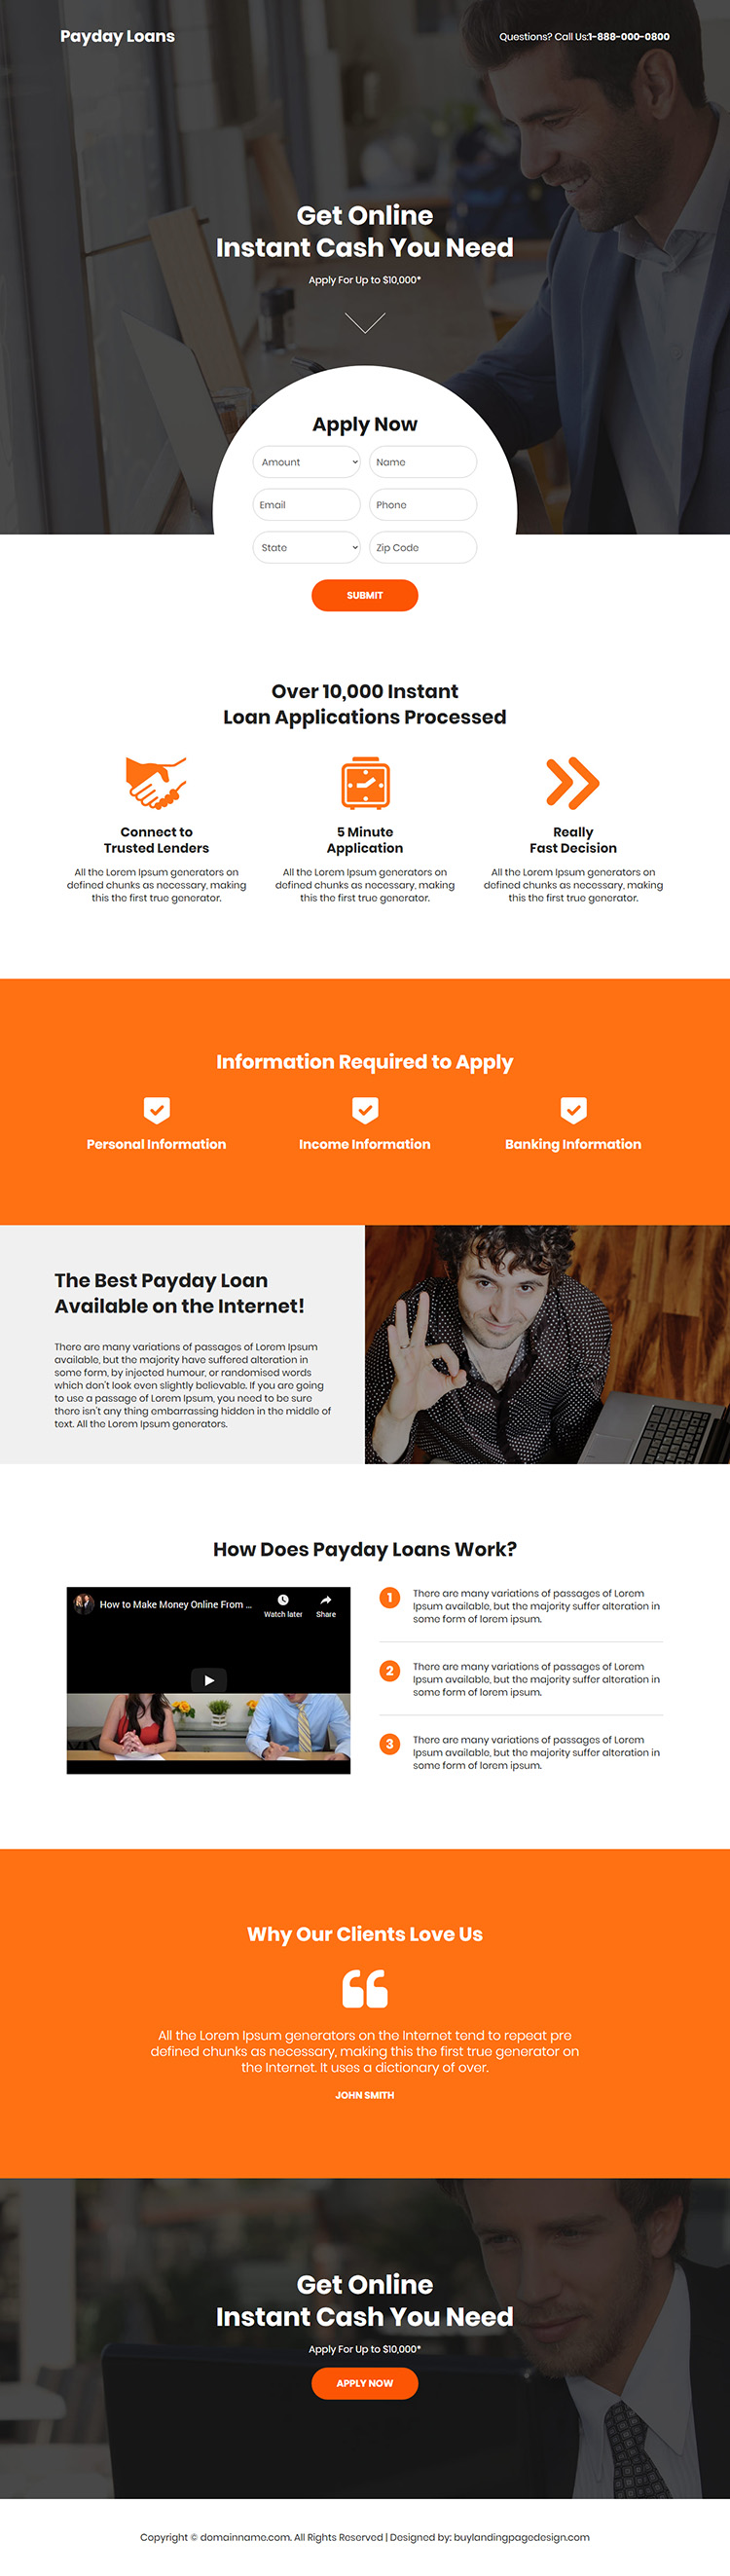 instant payday cash loan online responsive landing page